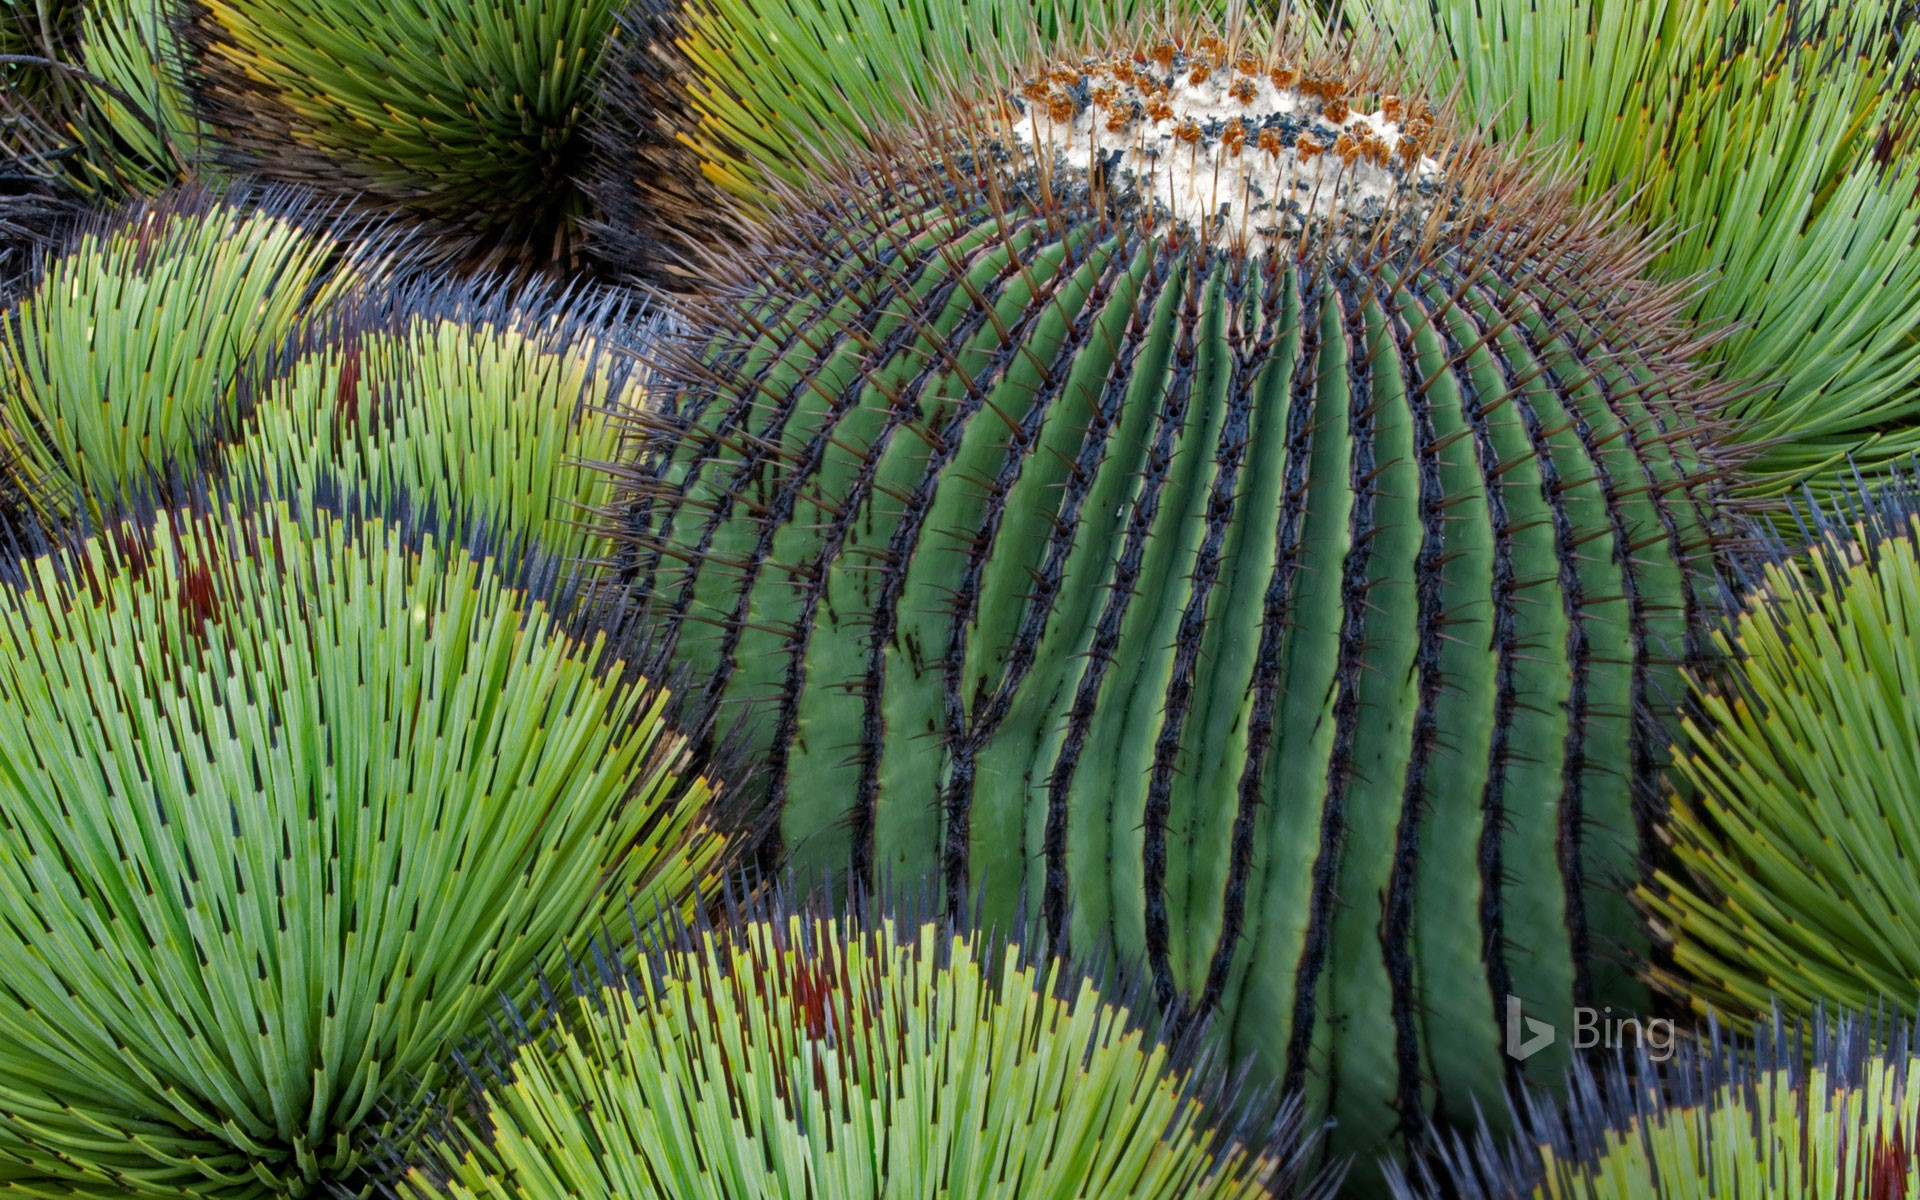 A giant barrel cactus and yucca plants in the Chihuahuan Desert, Mexico